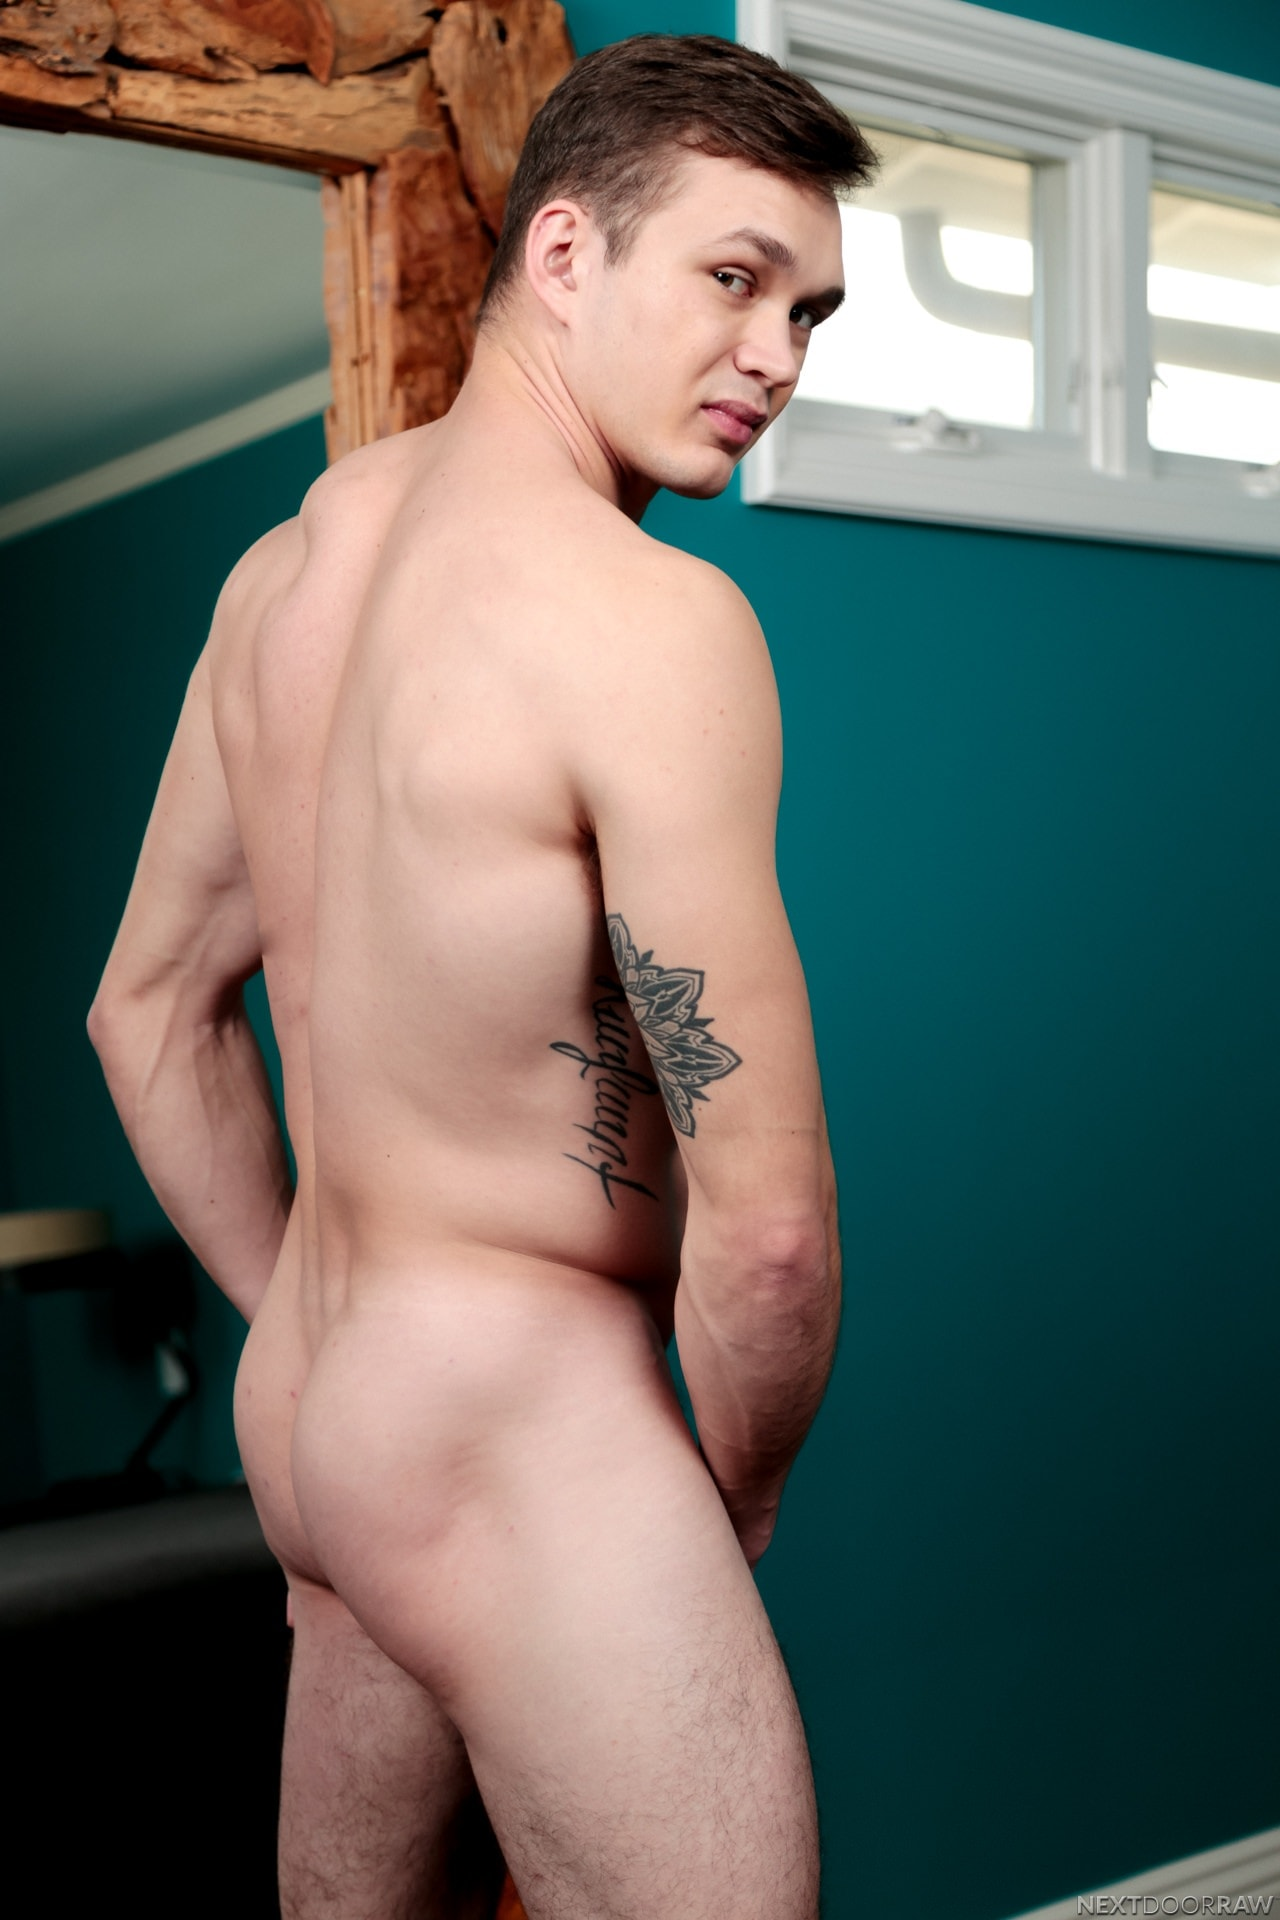 Next Door Studios 'Rescued Raw' starring Jackson Traynor (Photo 6)